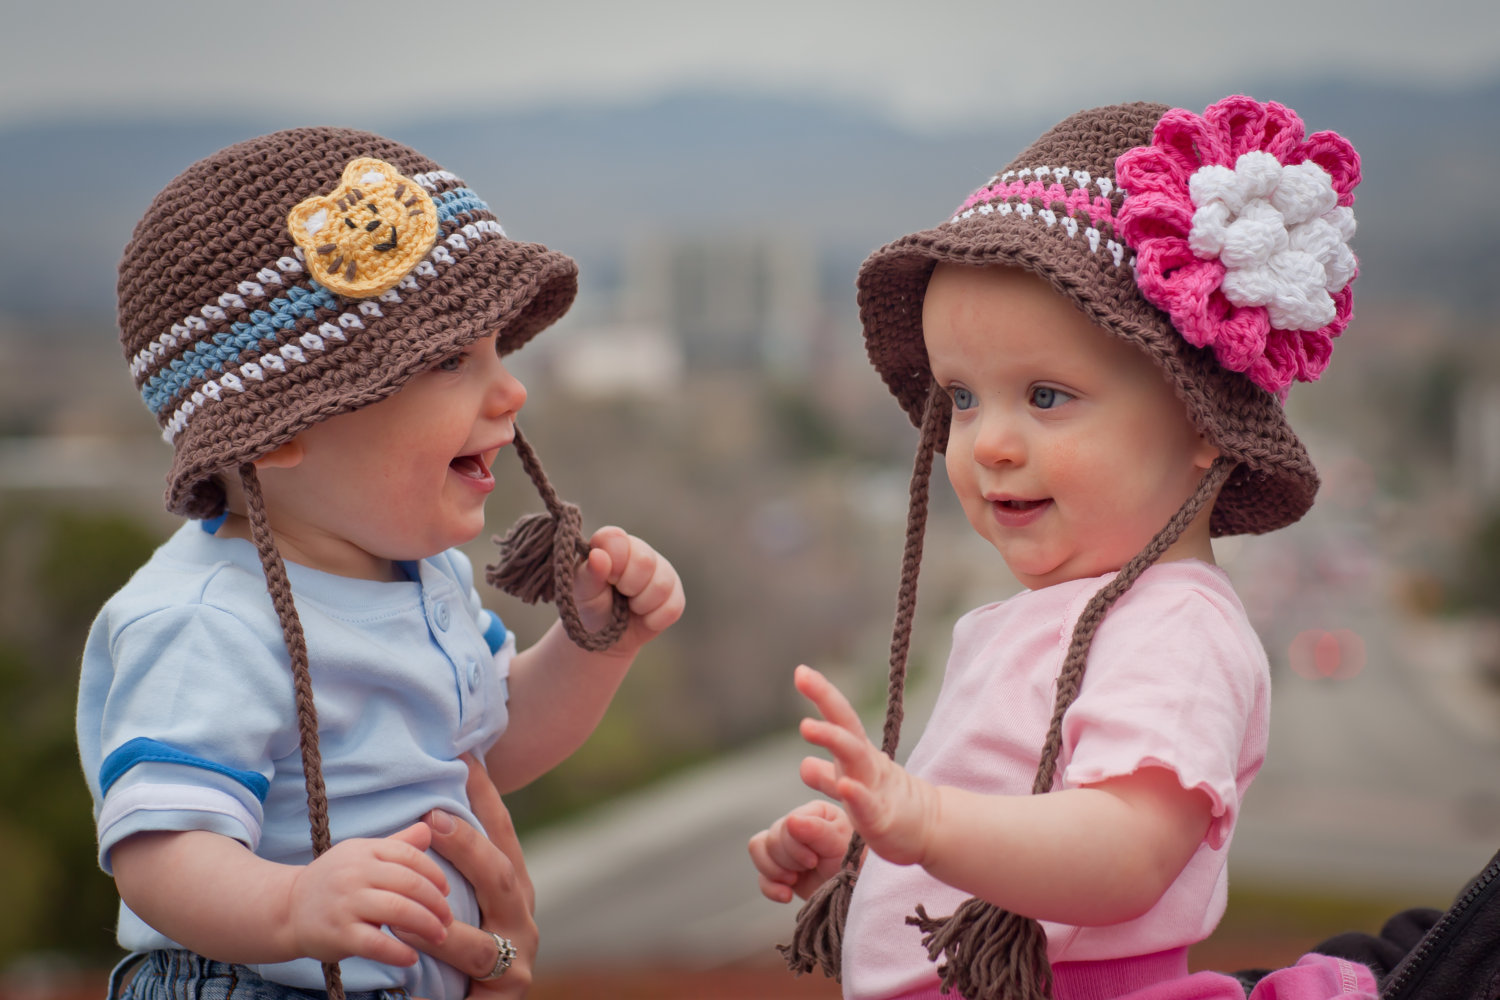 cute twins babies wallpapers images HD Wallpapers Buzz 1500x1000 1500x1000